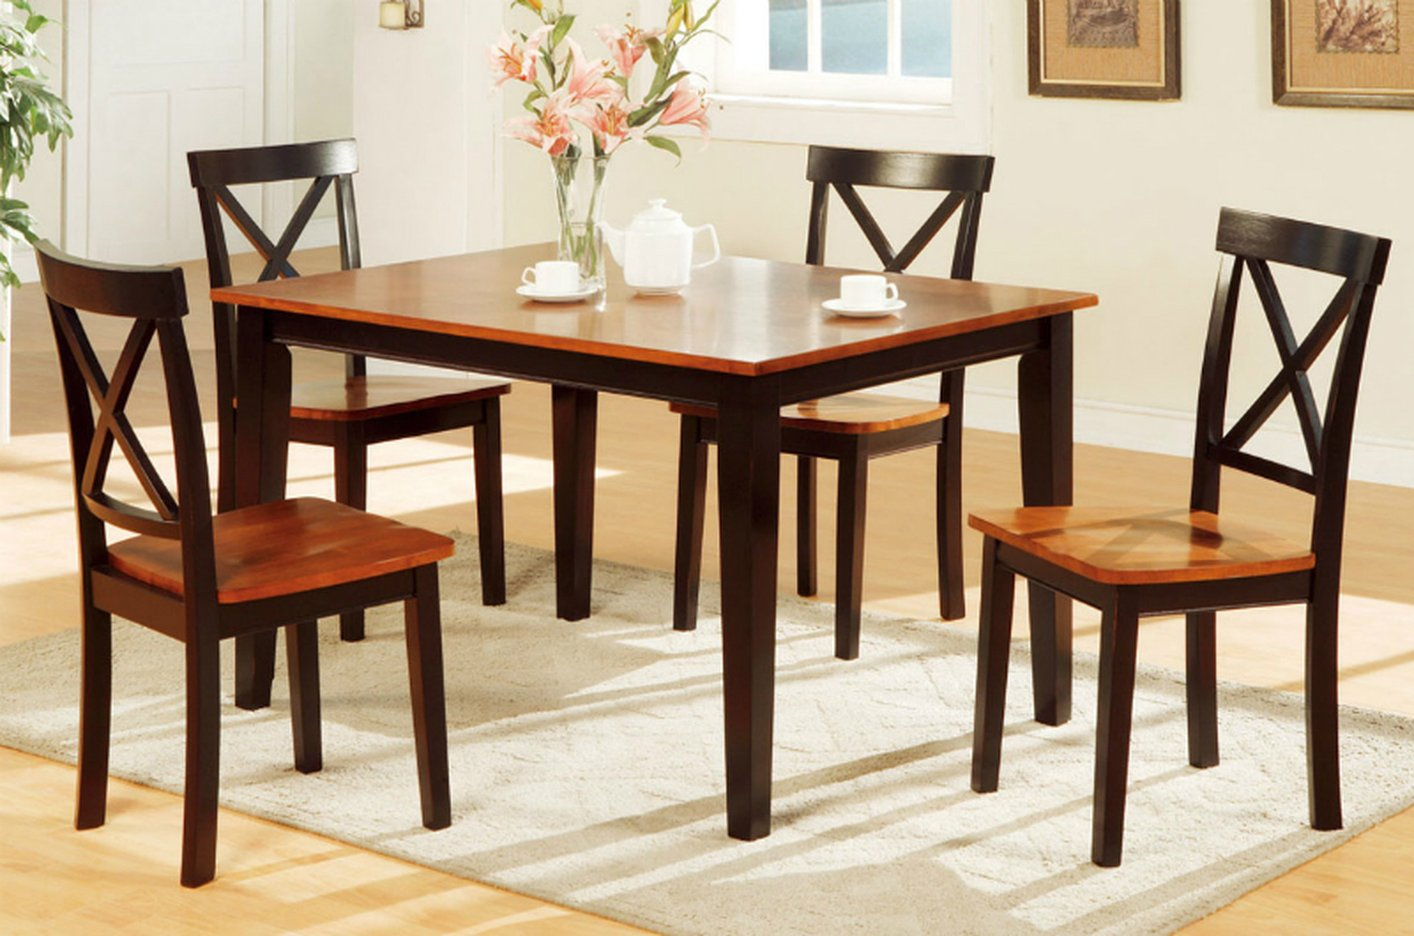 Amazing photo of Poundex F2250 Brown Wood Dining Table and Chair Set Steal A Sofa  with #B44817 color and 1414x936 pixels